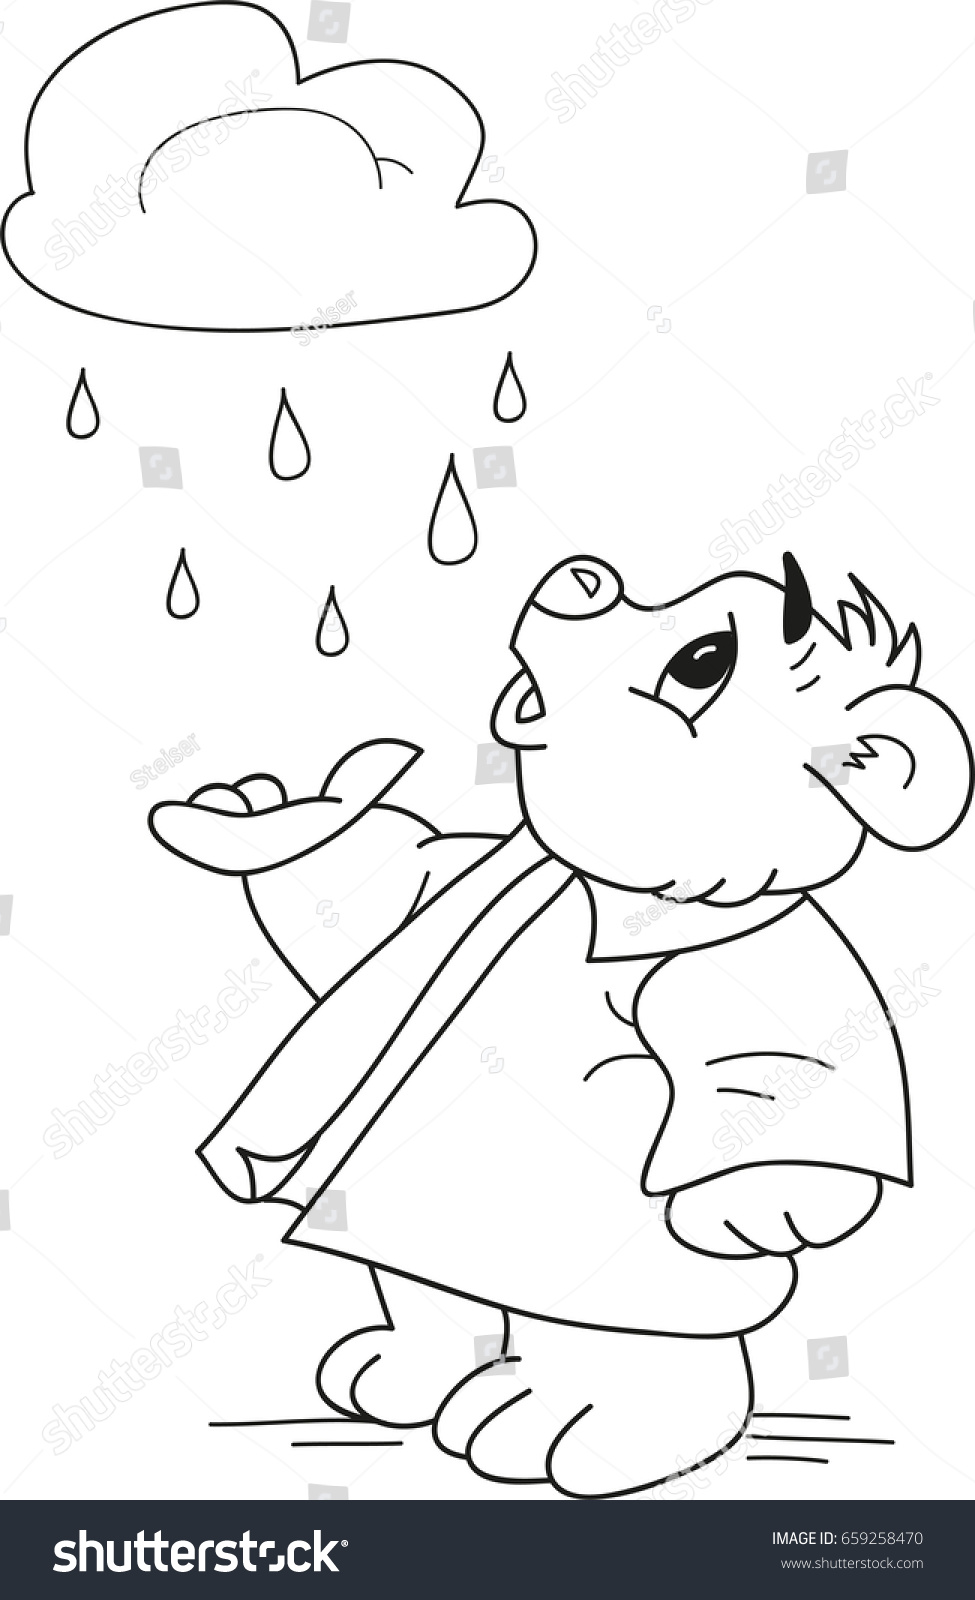 Rain Drops Coloring Book - Worksheet & Coloring Pages